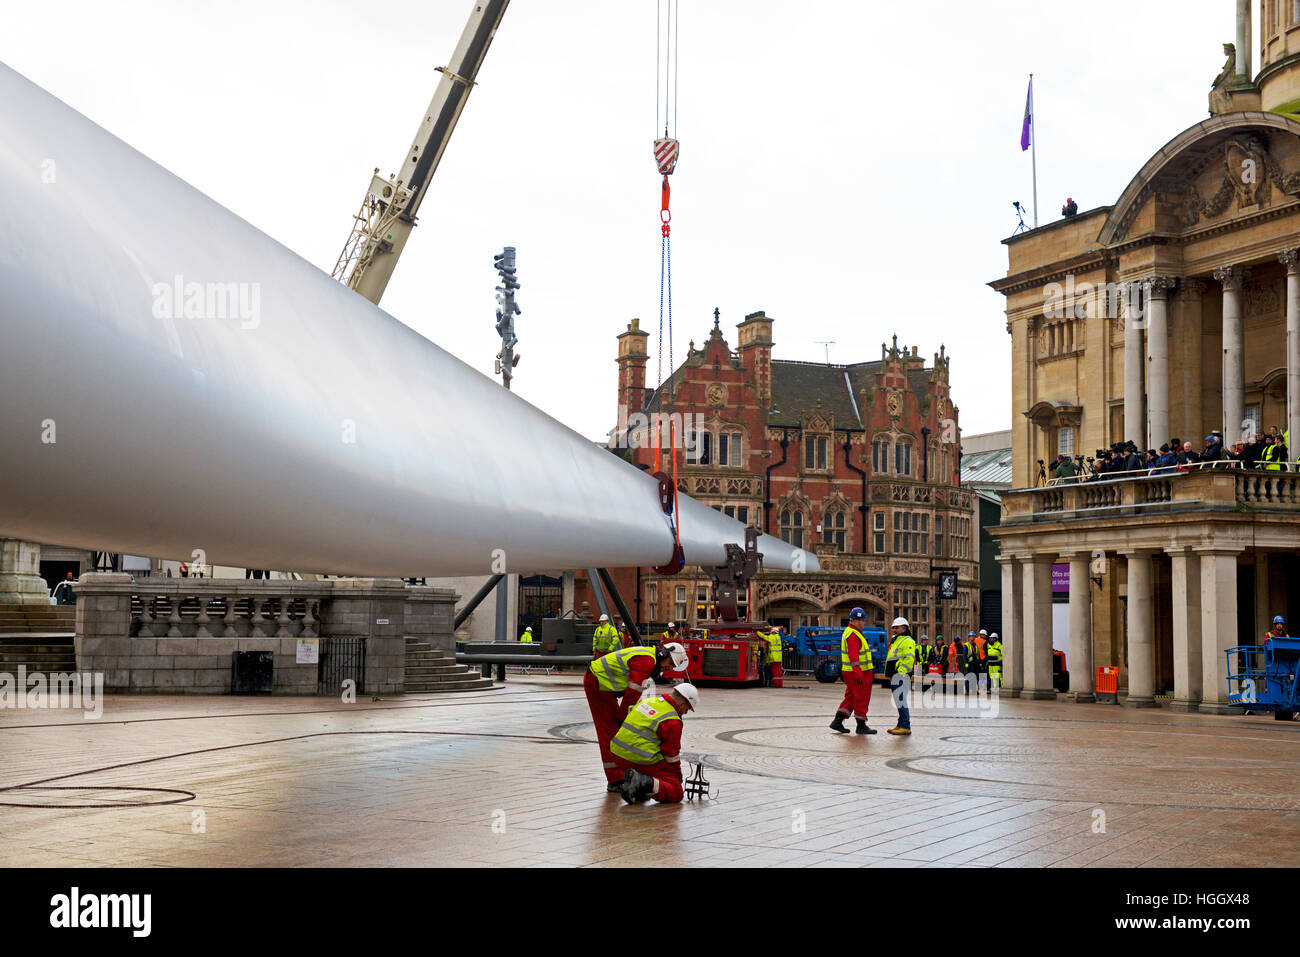 Installing wind turbine blade in Victoria Square, Kingston upon Hull, East Riding of Yorkshire, Humberside, England - Stock Image